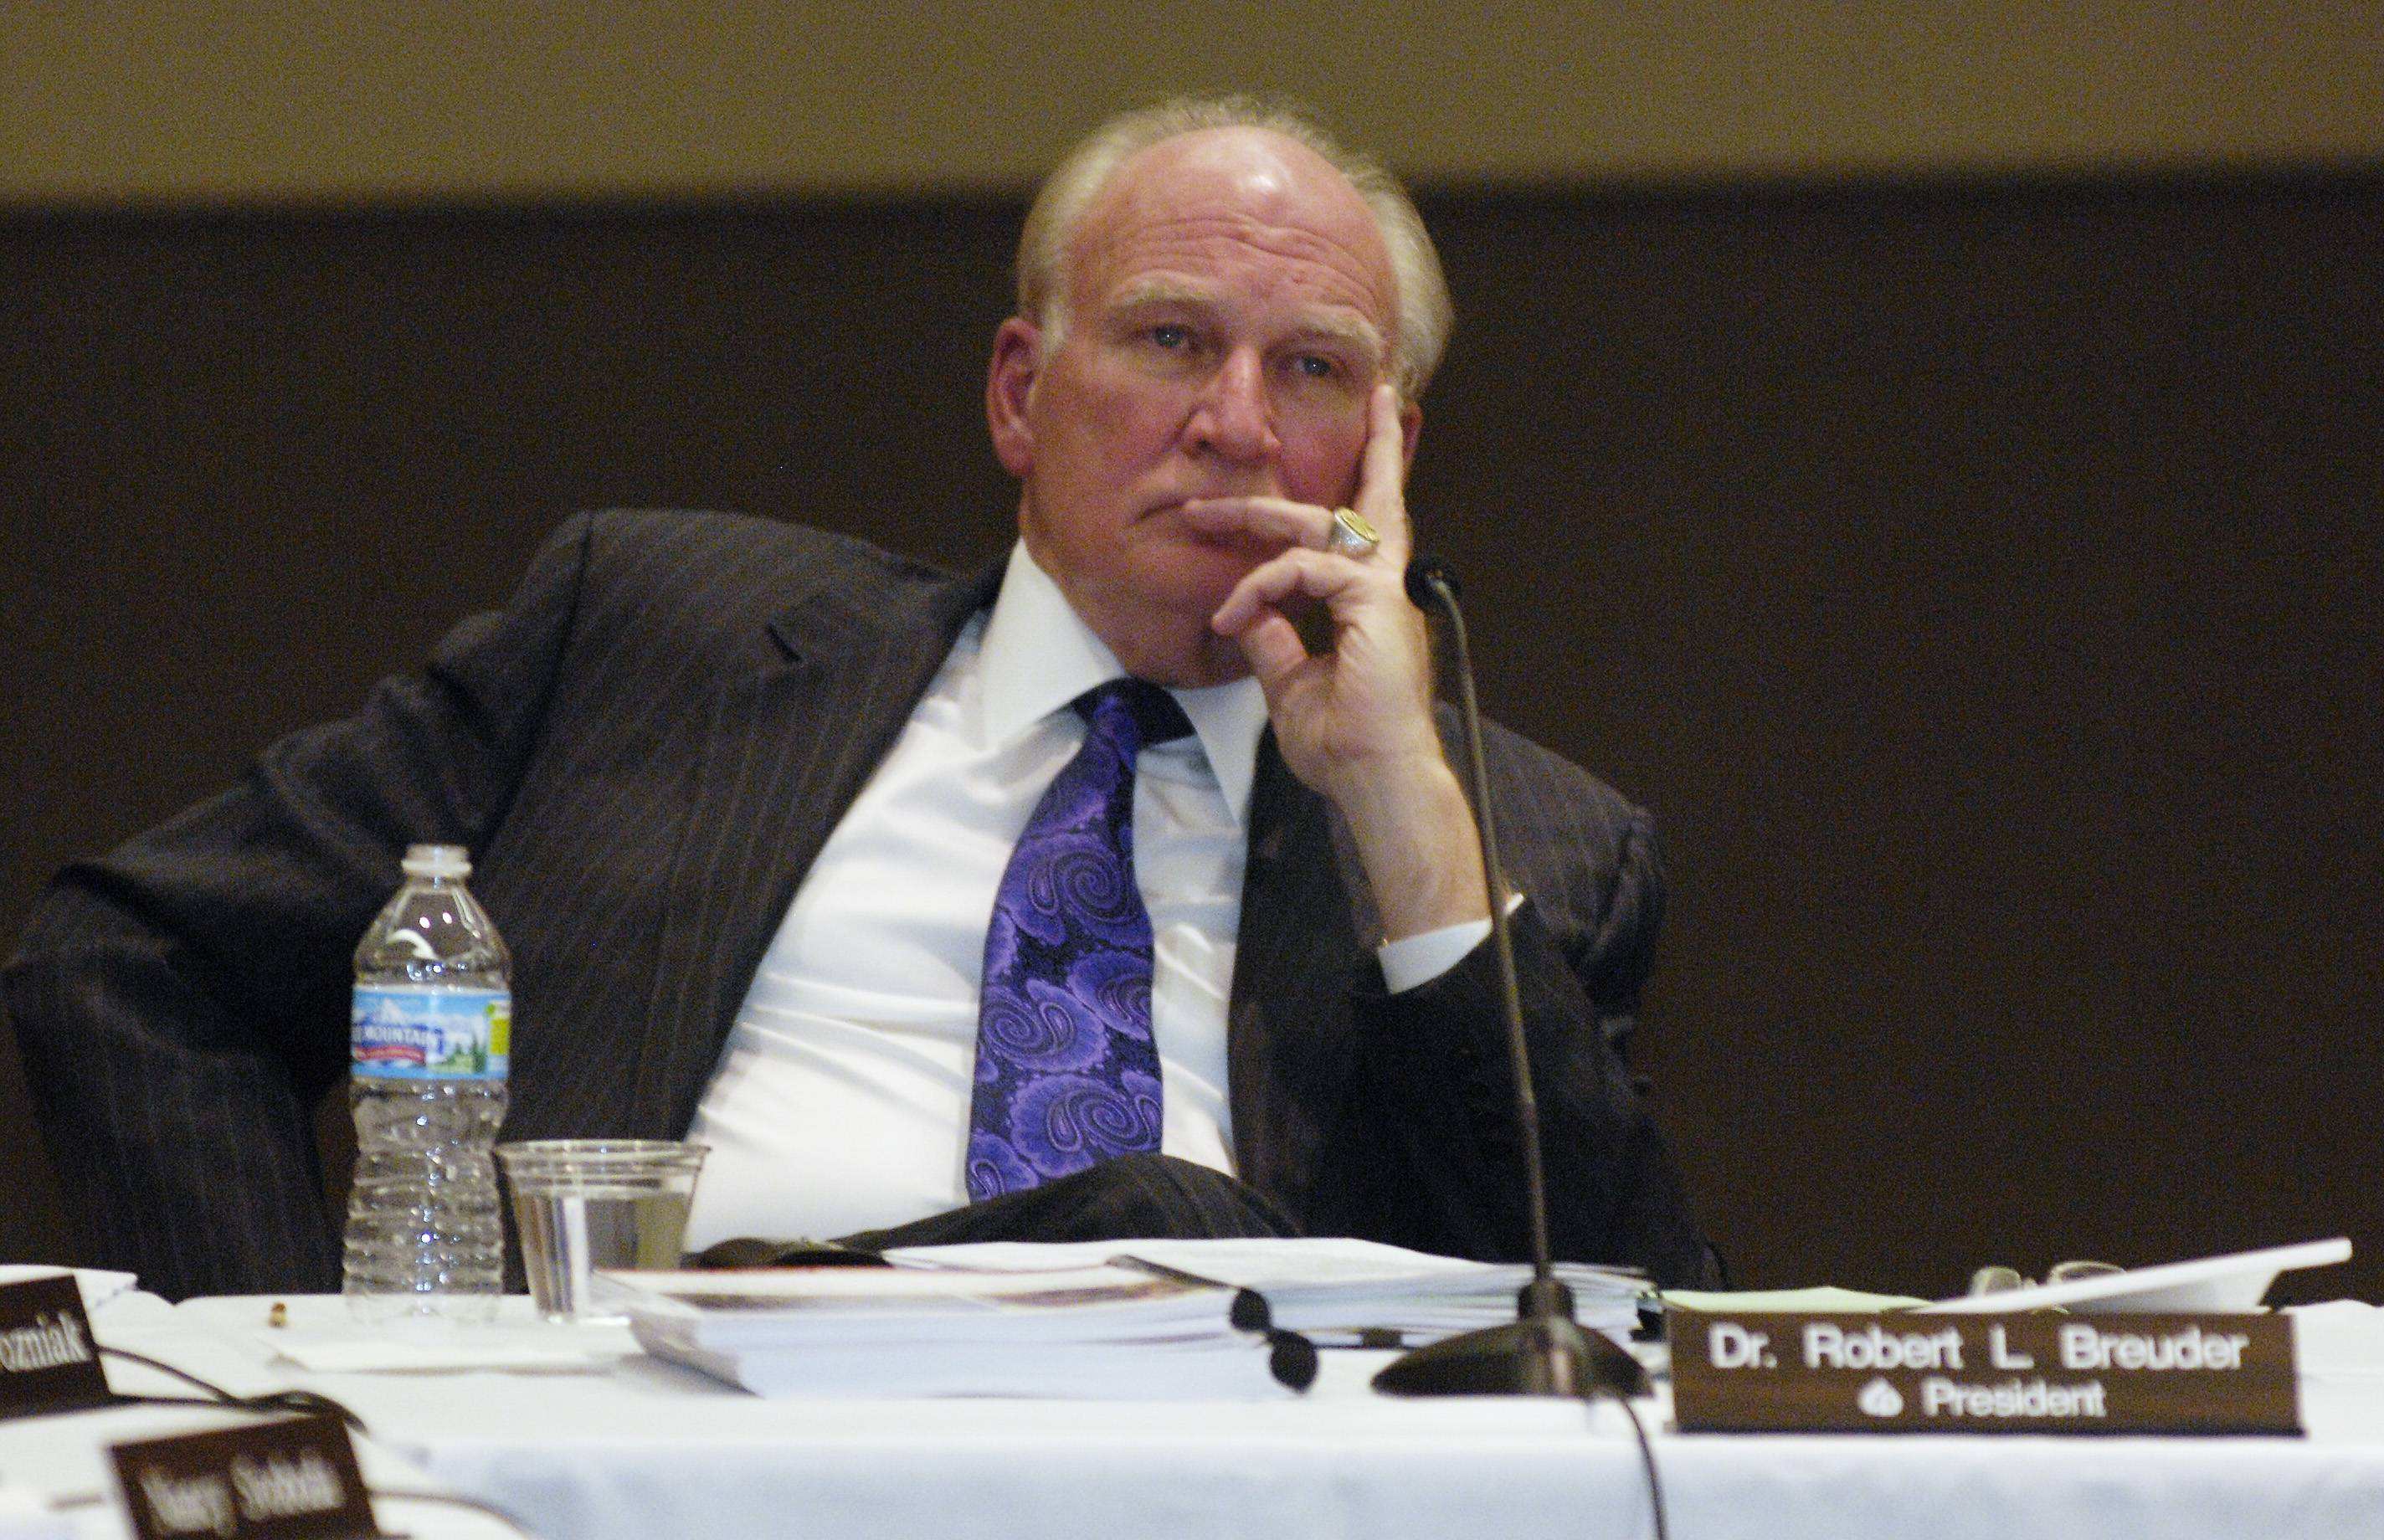 Robert Breuder was fired Tuesday night as president of the College of DuPage when the school's board of trustees voted on a resolution to terminate him.